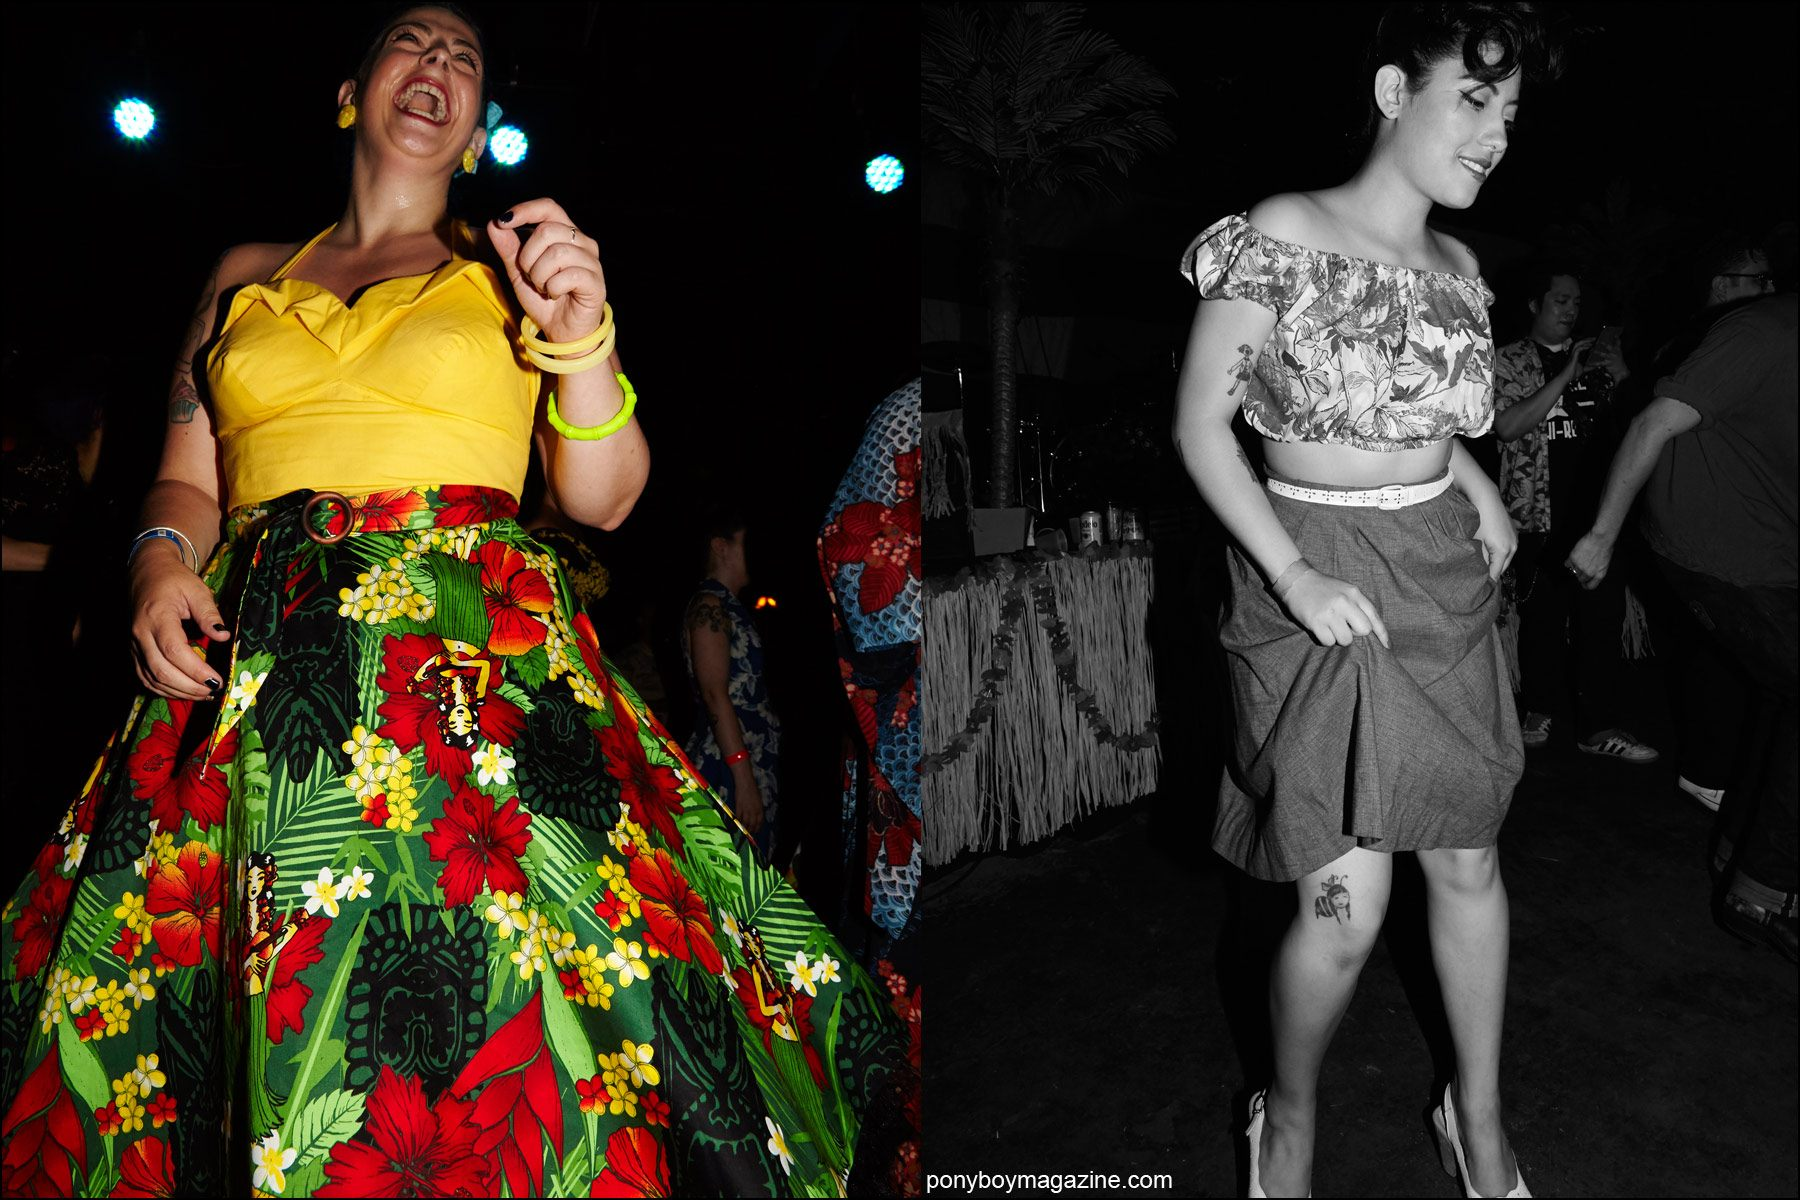 Rockabilly 1950's vintage women's fashions, photographed on the dance floor at Hula Rock Vol 2 weekender. Photos by Alexander Thompson for Ponyboy magazine NY.